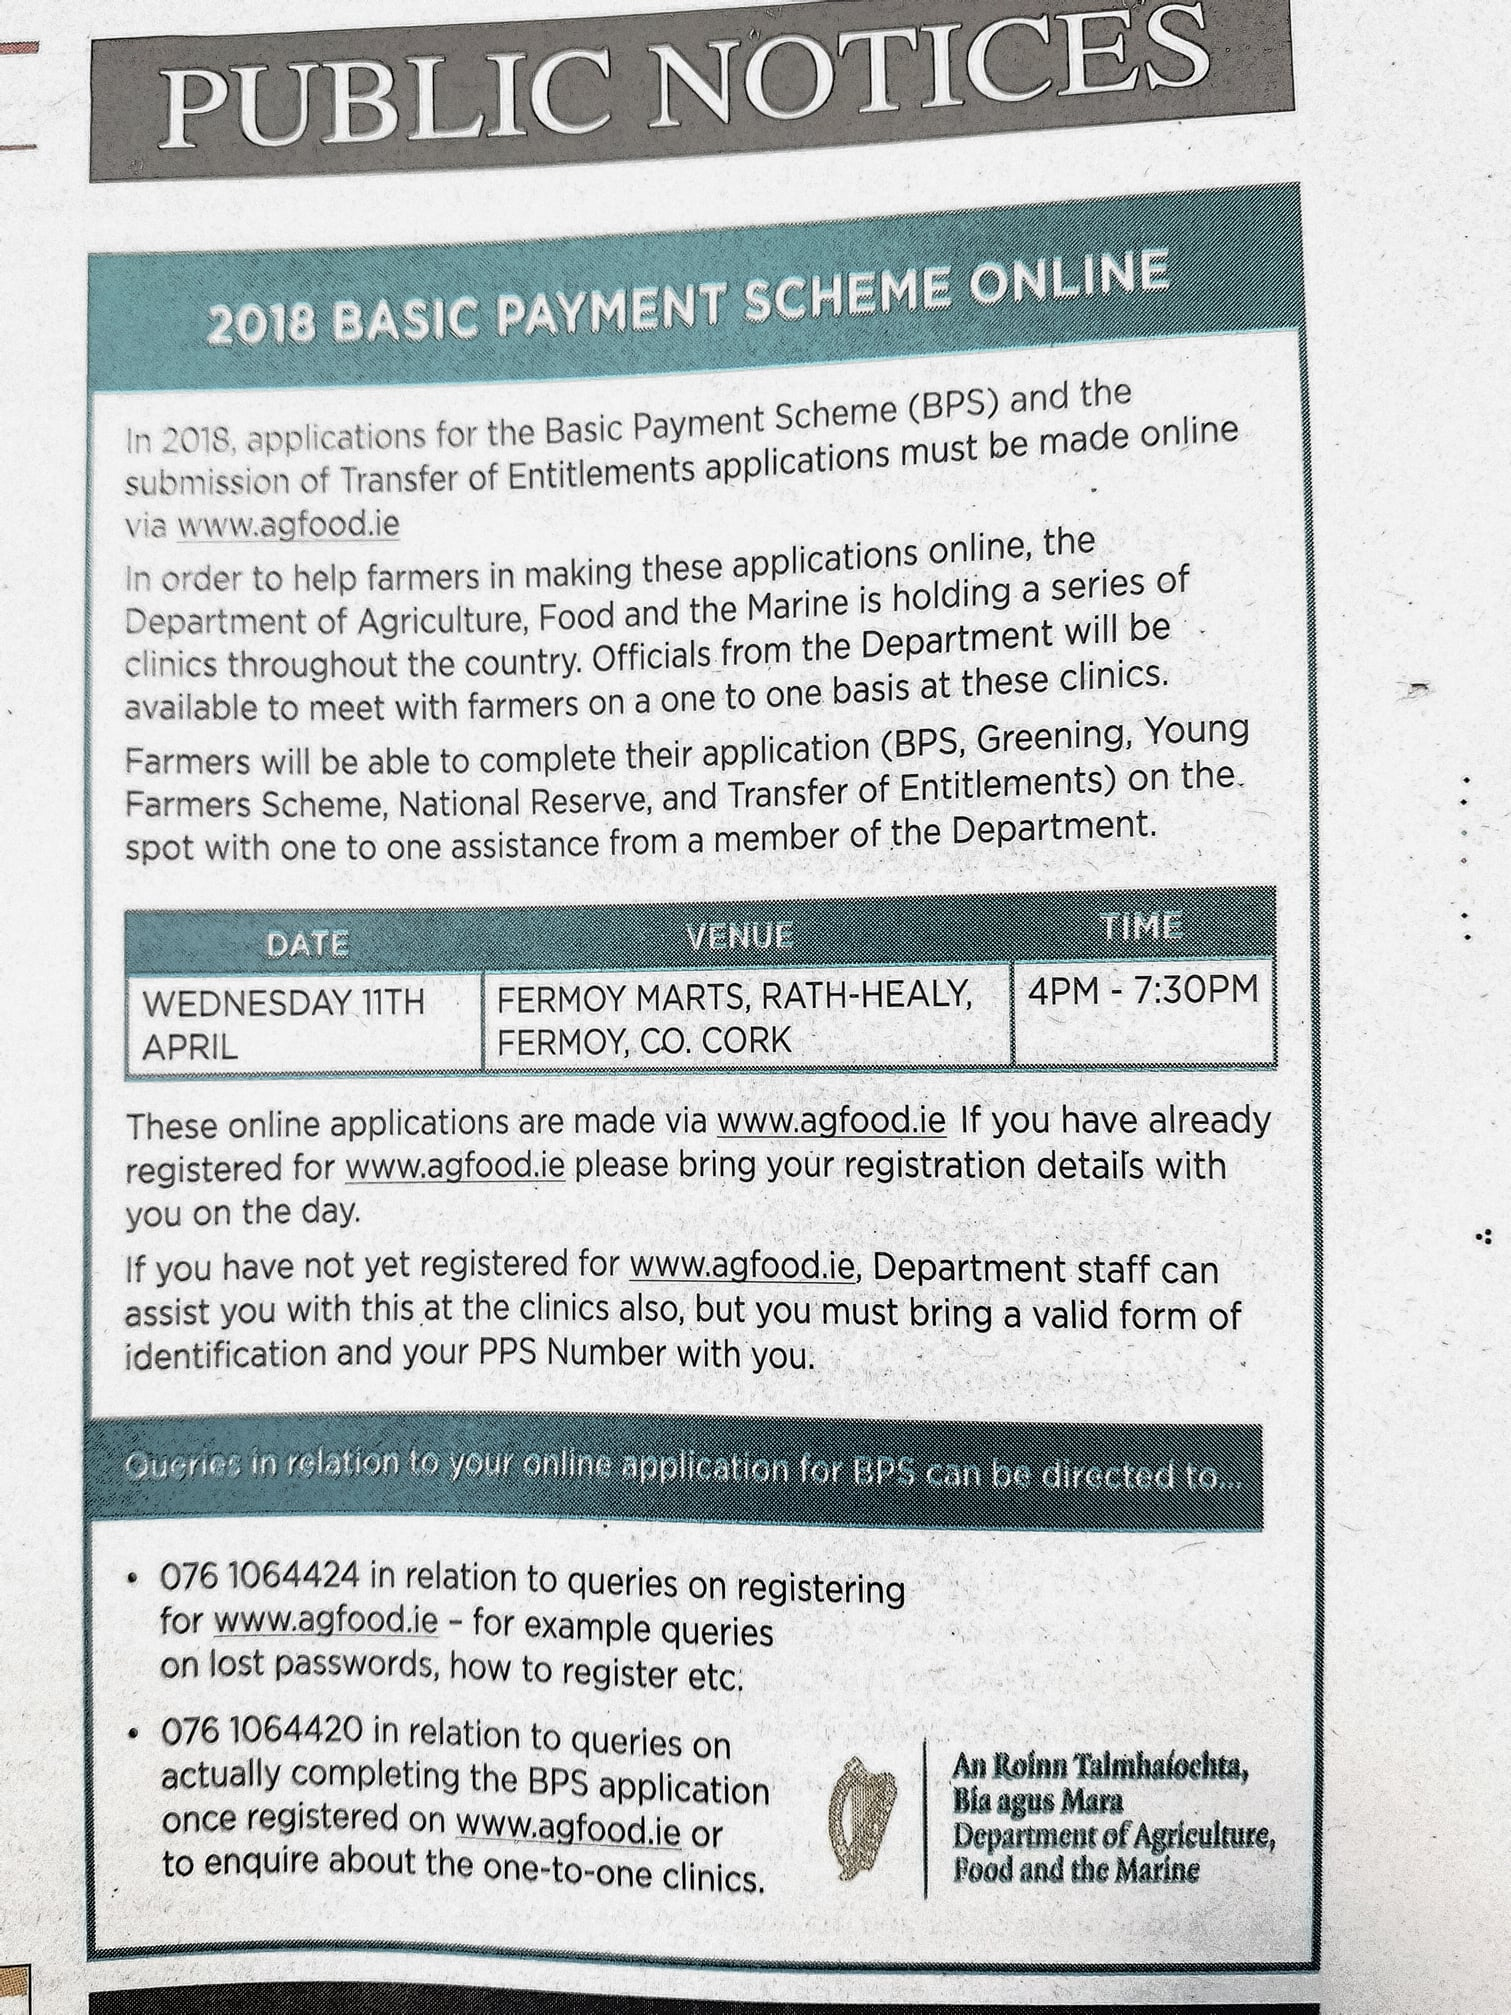 Online clinic for North Cork Farmers Applying for Basic Payment Scheme (BPS)